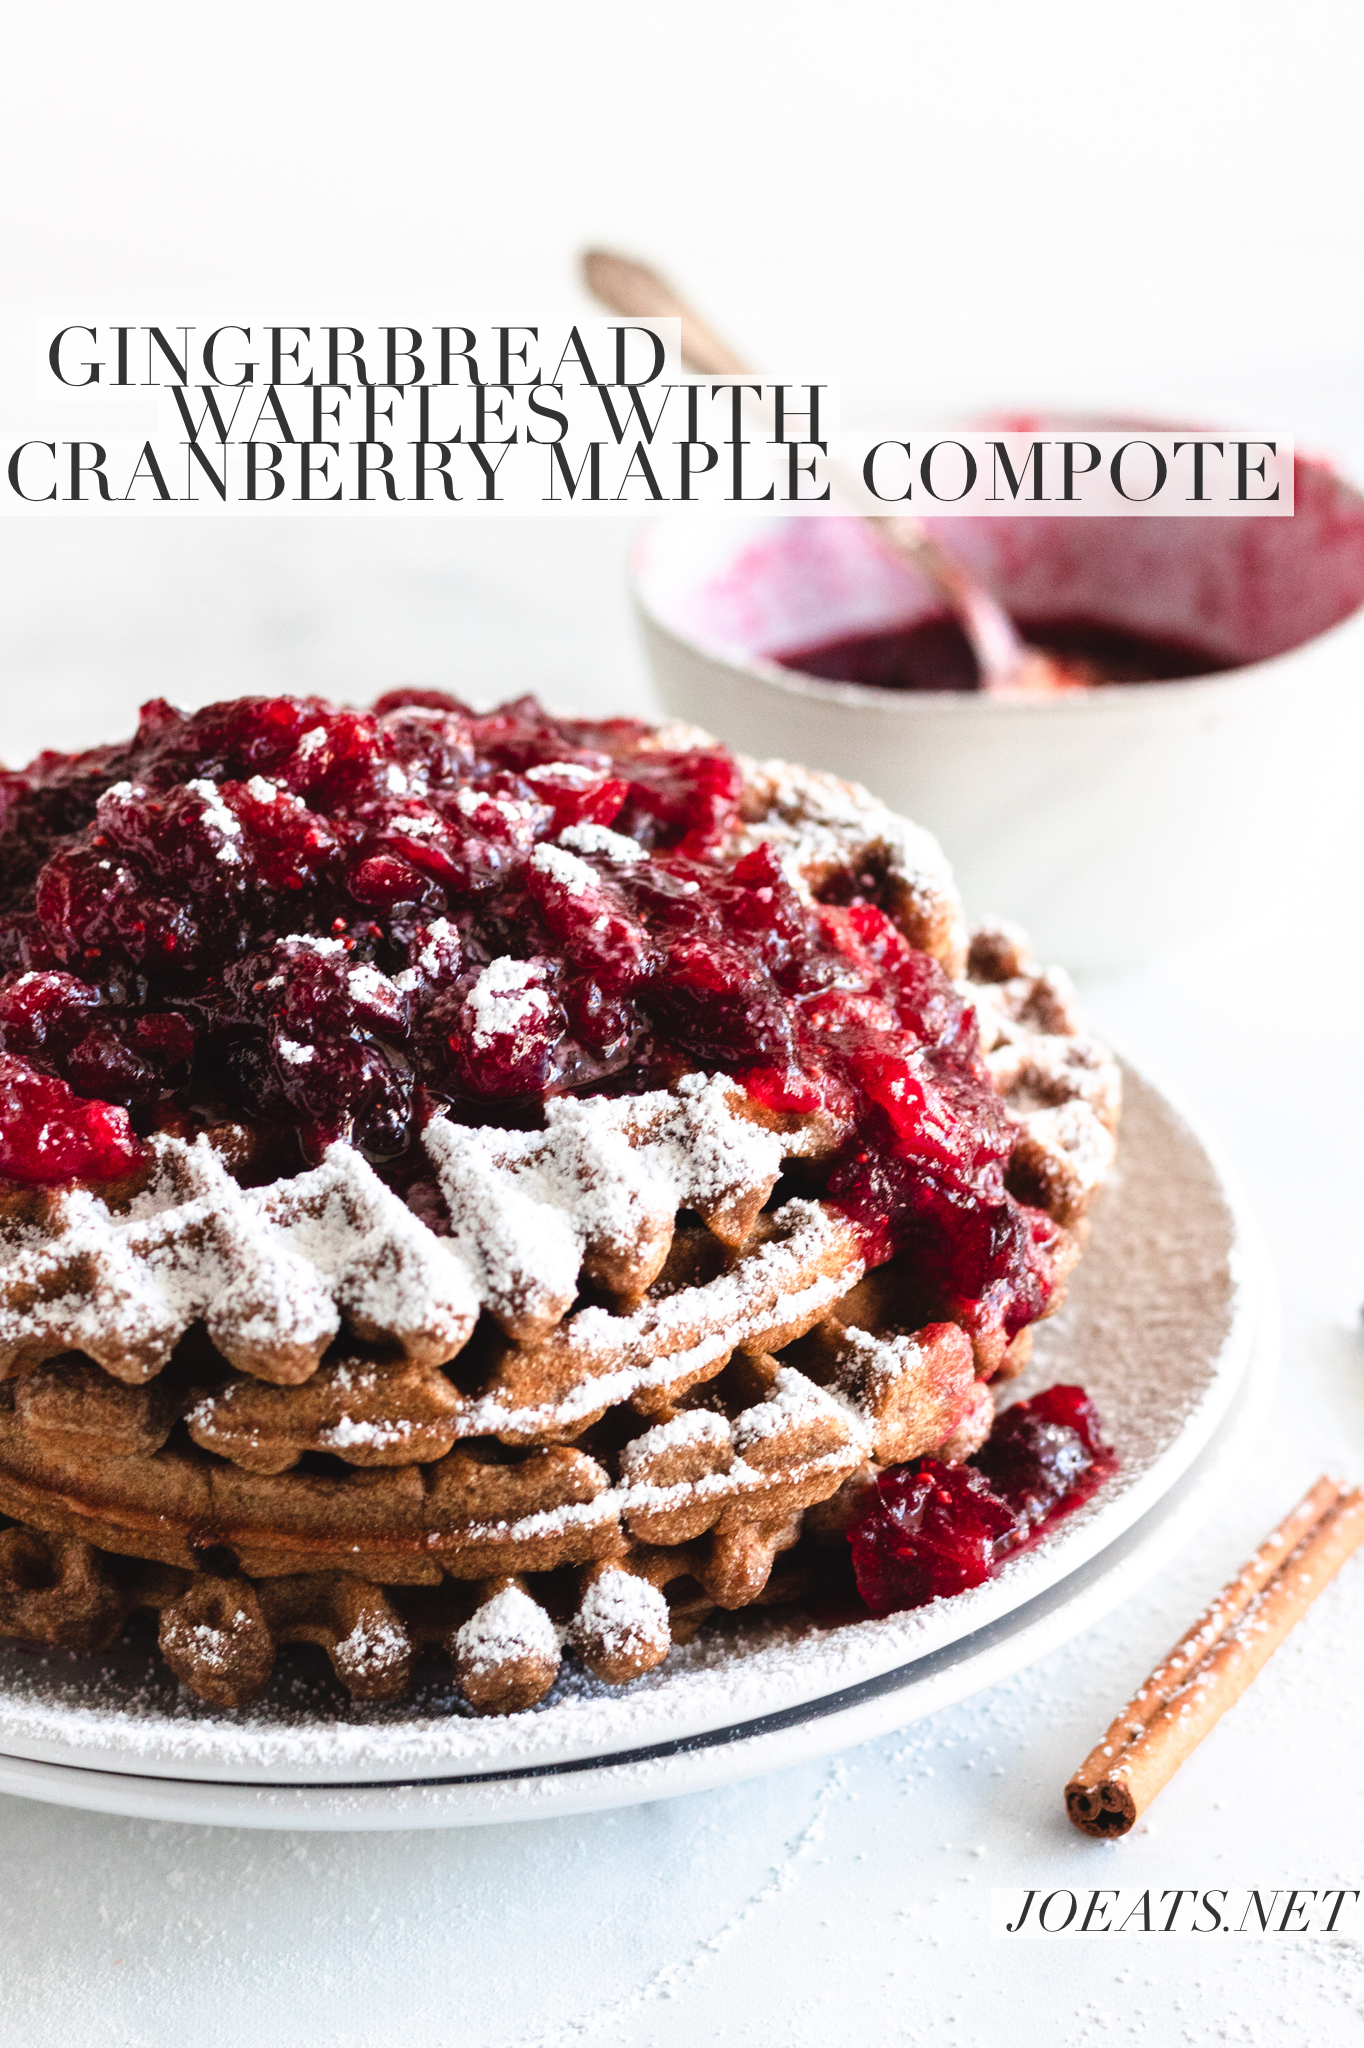 stack of gingerbread waffles with cranberry maple compote and powdered sugar with text overlay